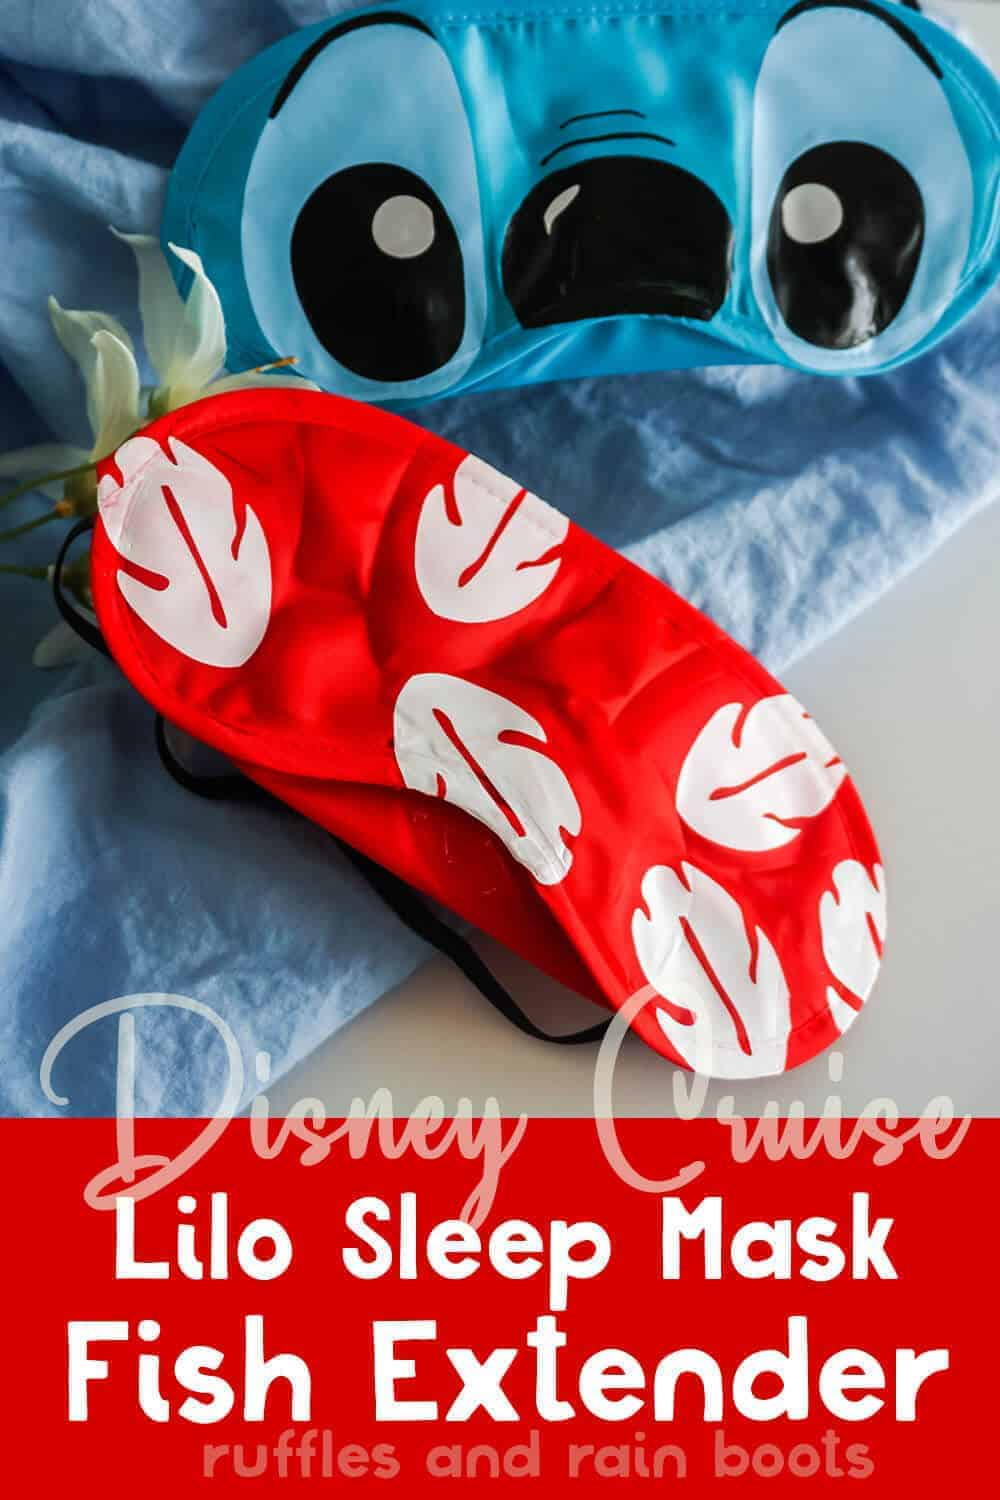 easy disney craft of a lilo eye mask with text which reads disney cruise lilo sleep mask fish extender